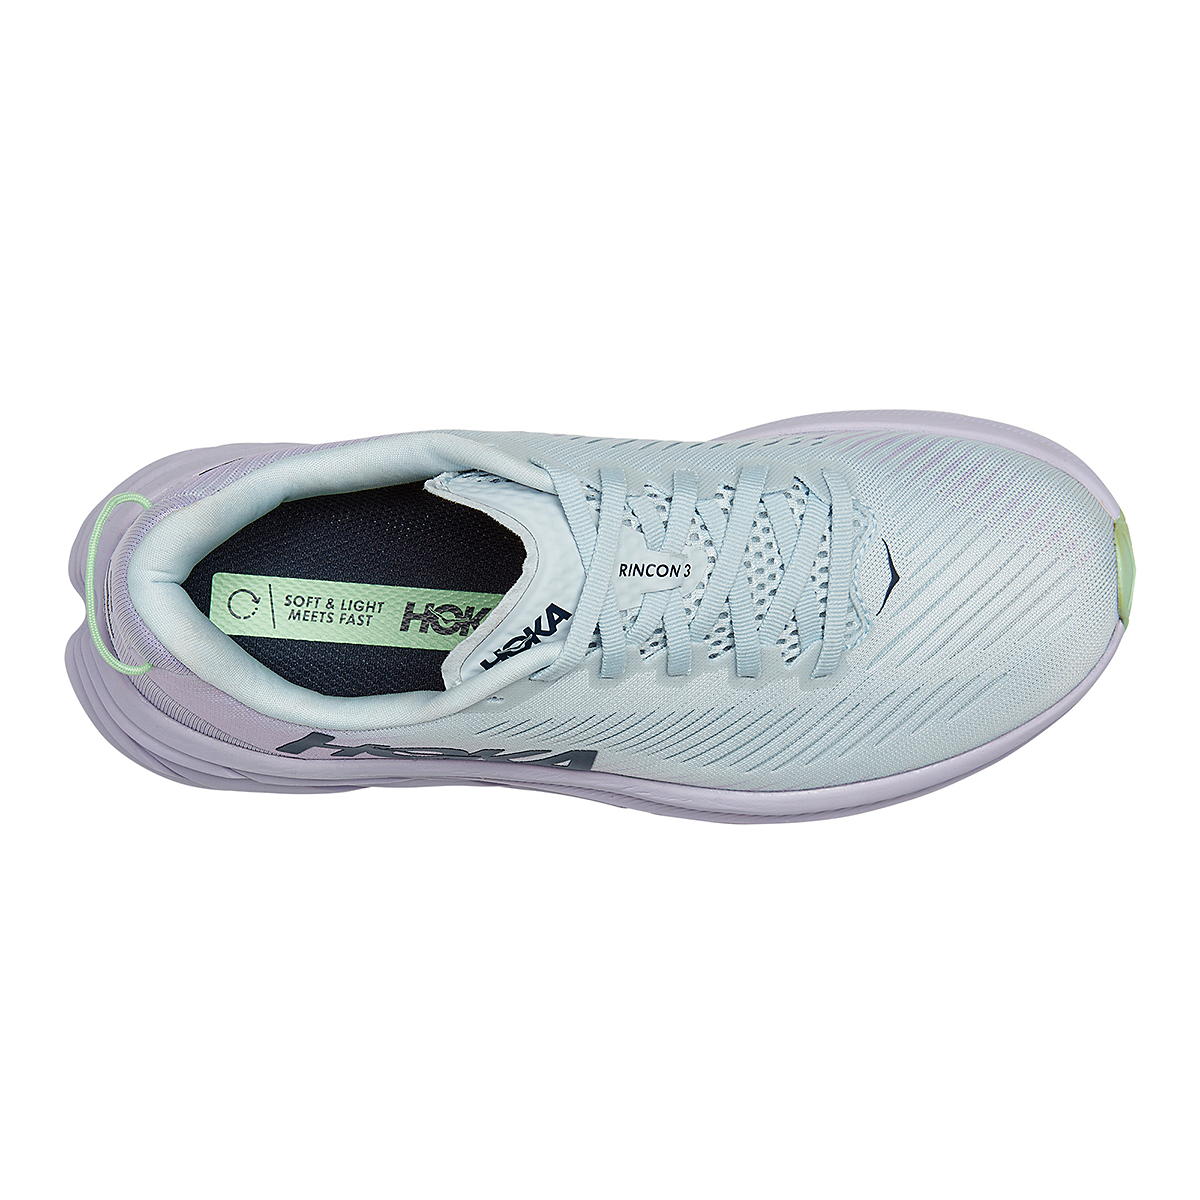 Women's Hoka One One Rincon 3 Running Shoe - Color: Plein Air/Orchid Hush - Size: 5 - Width: Regular, Plein Air/Orchid Hush, large, image 5